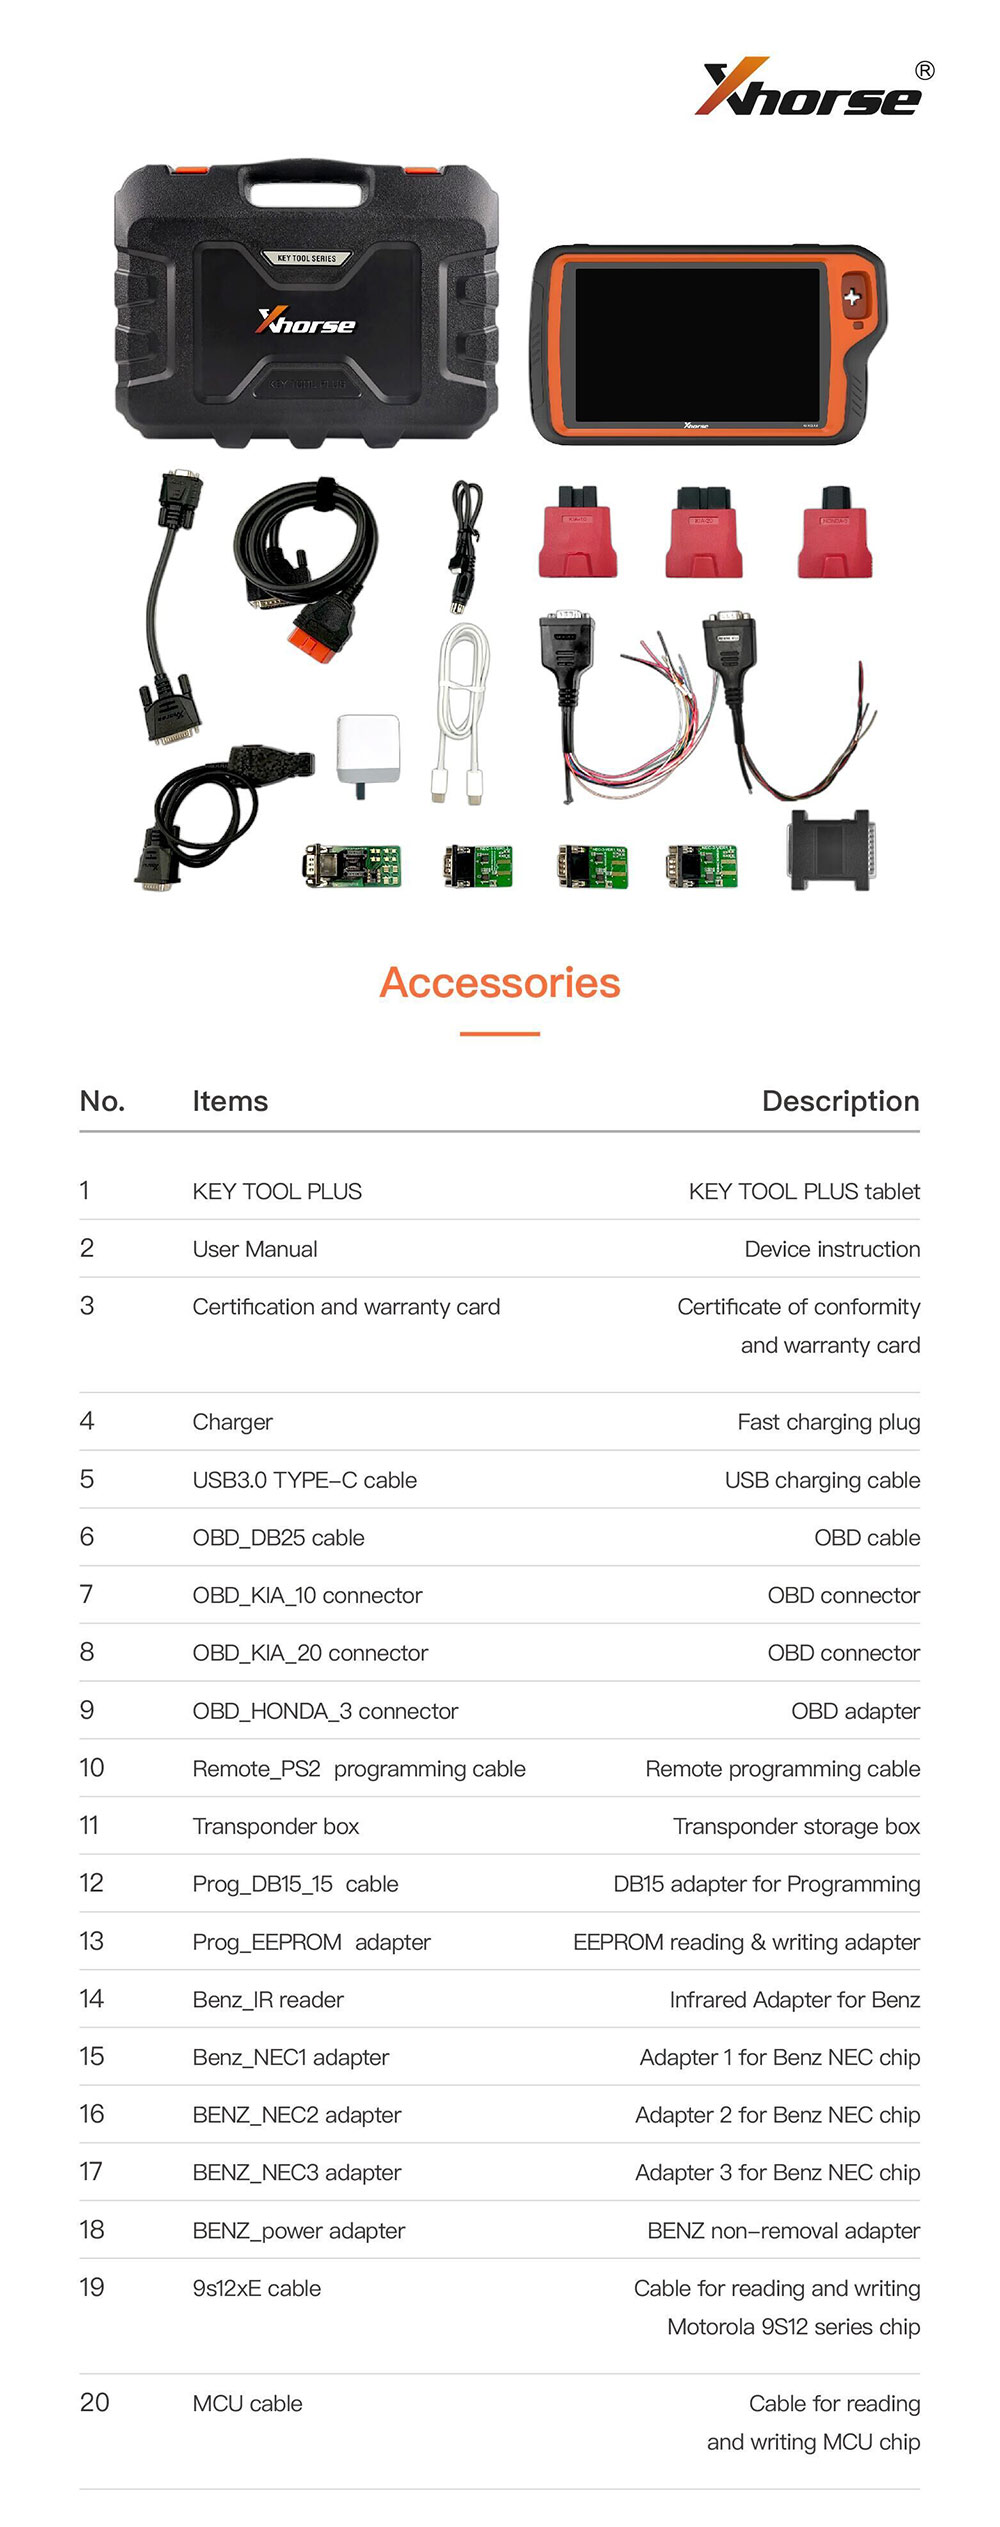 Xhorse VVDI Key Tool Plus Package List